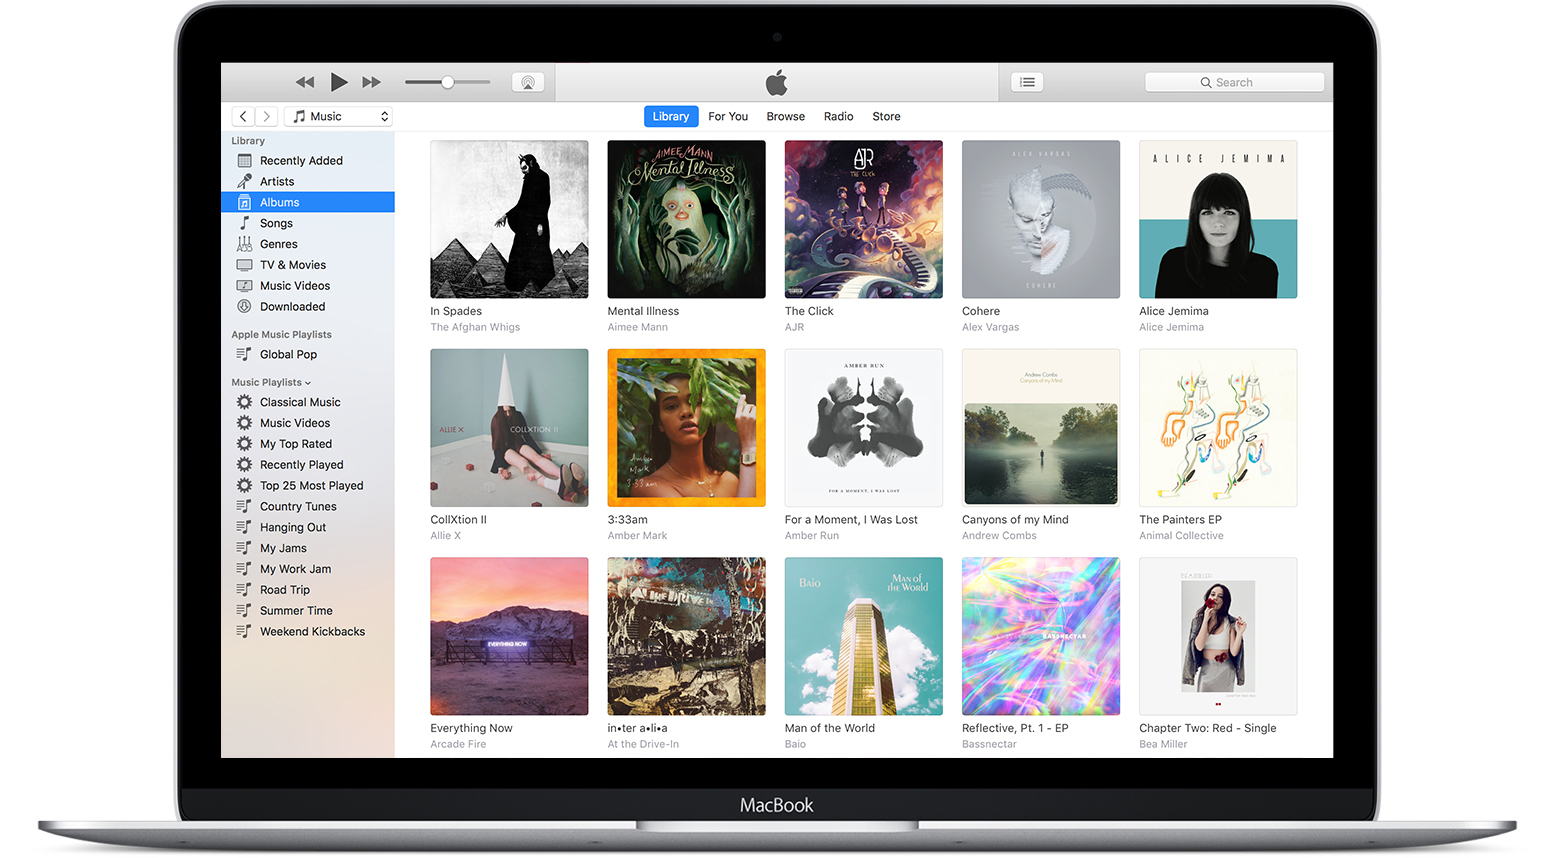 itunes for windows 7 64 bit 12.7